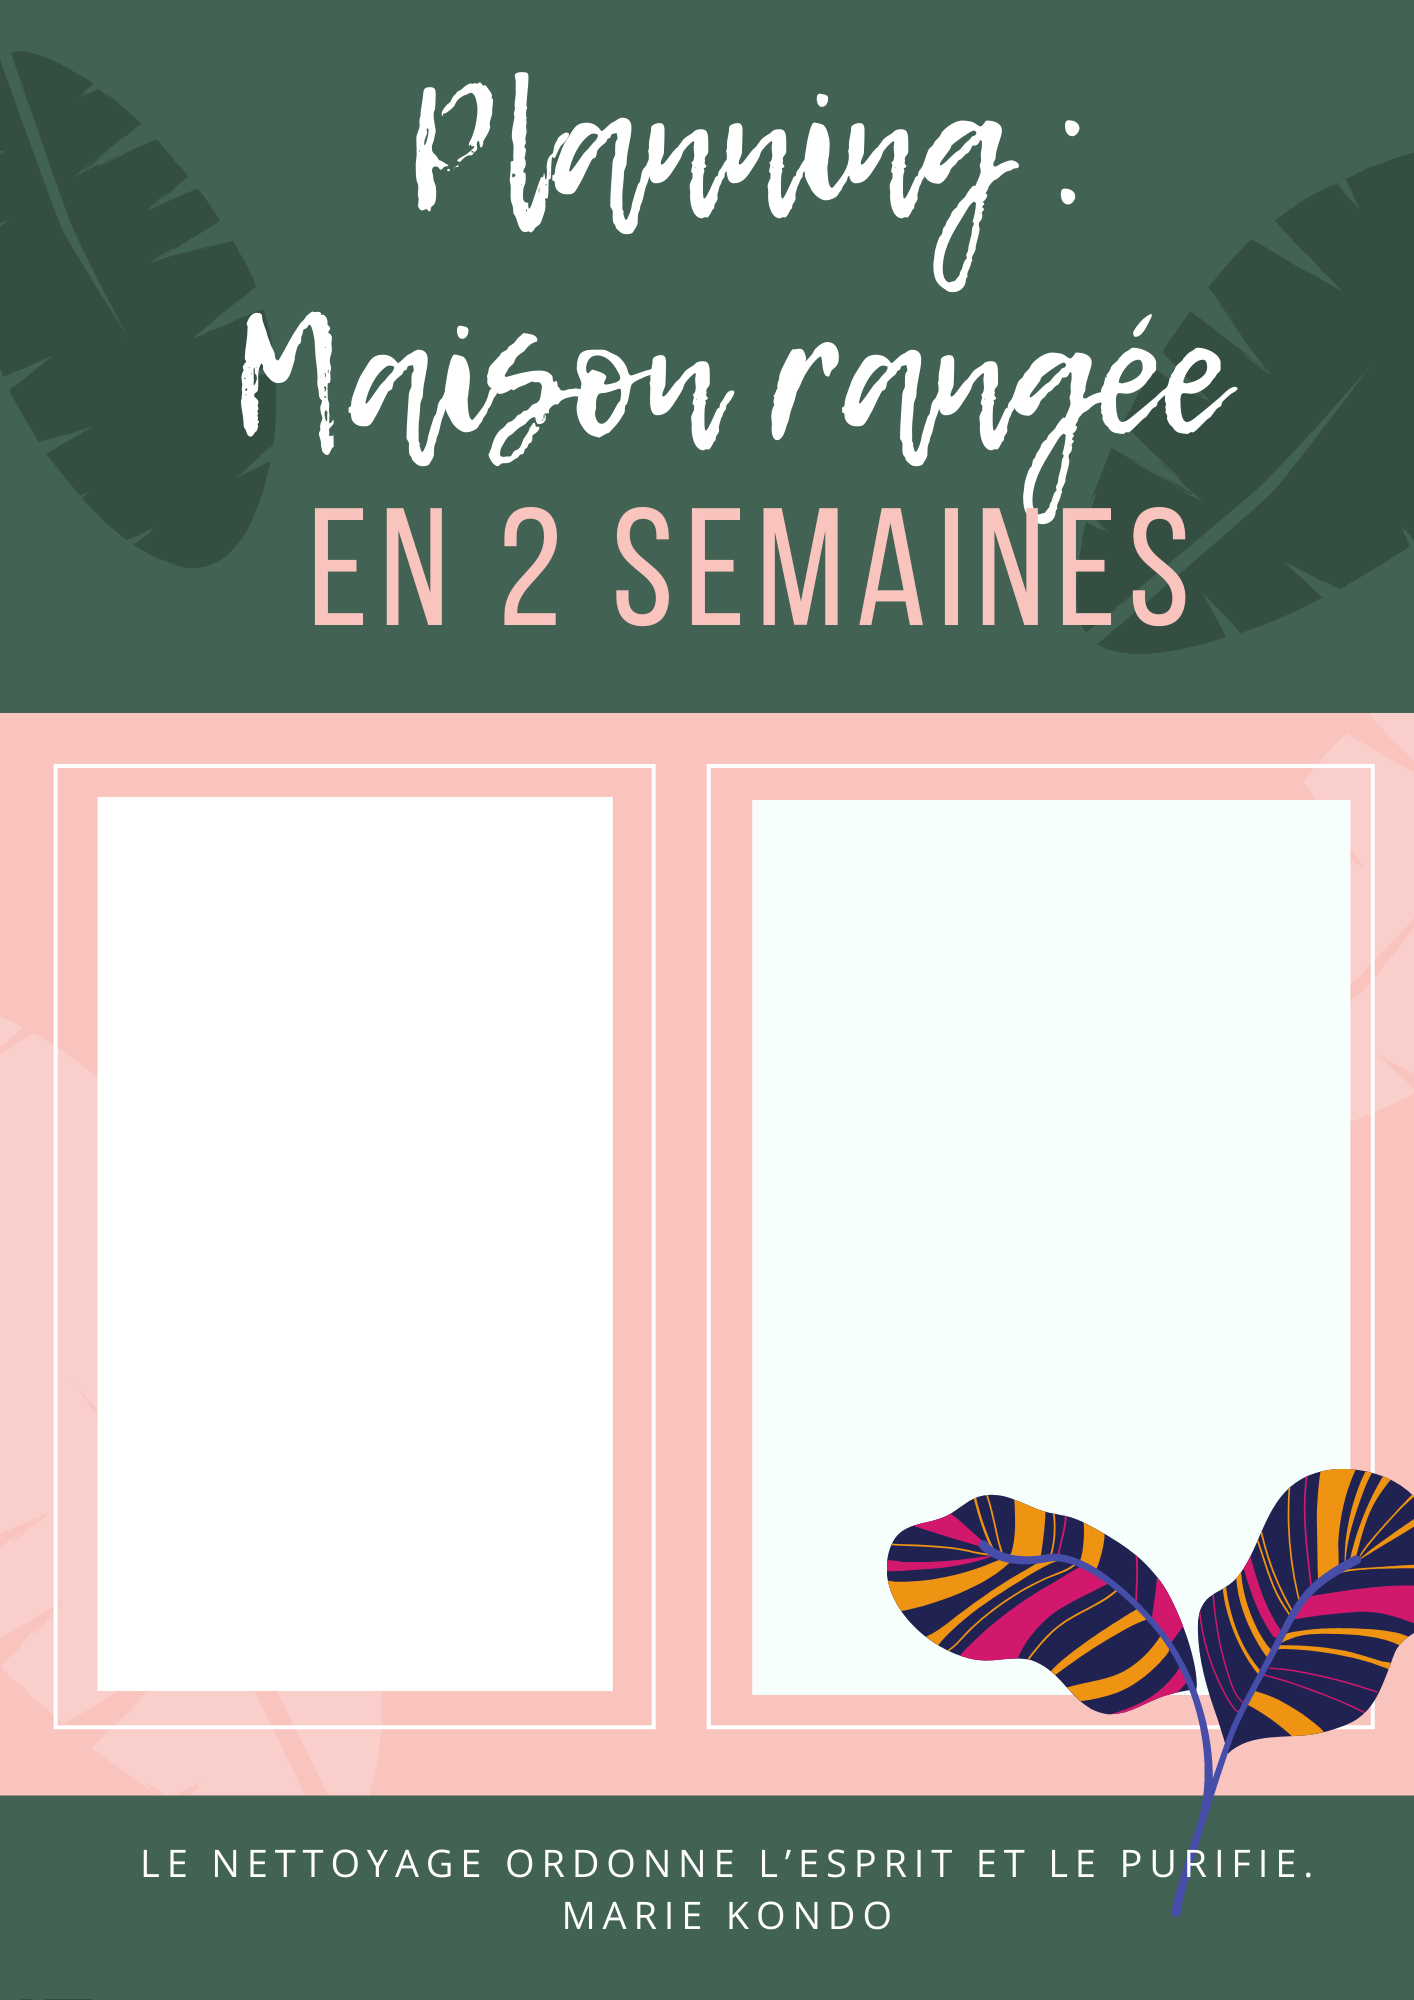 to-do-list-maison-rangee-ordonnee